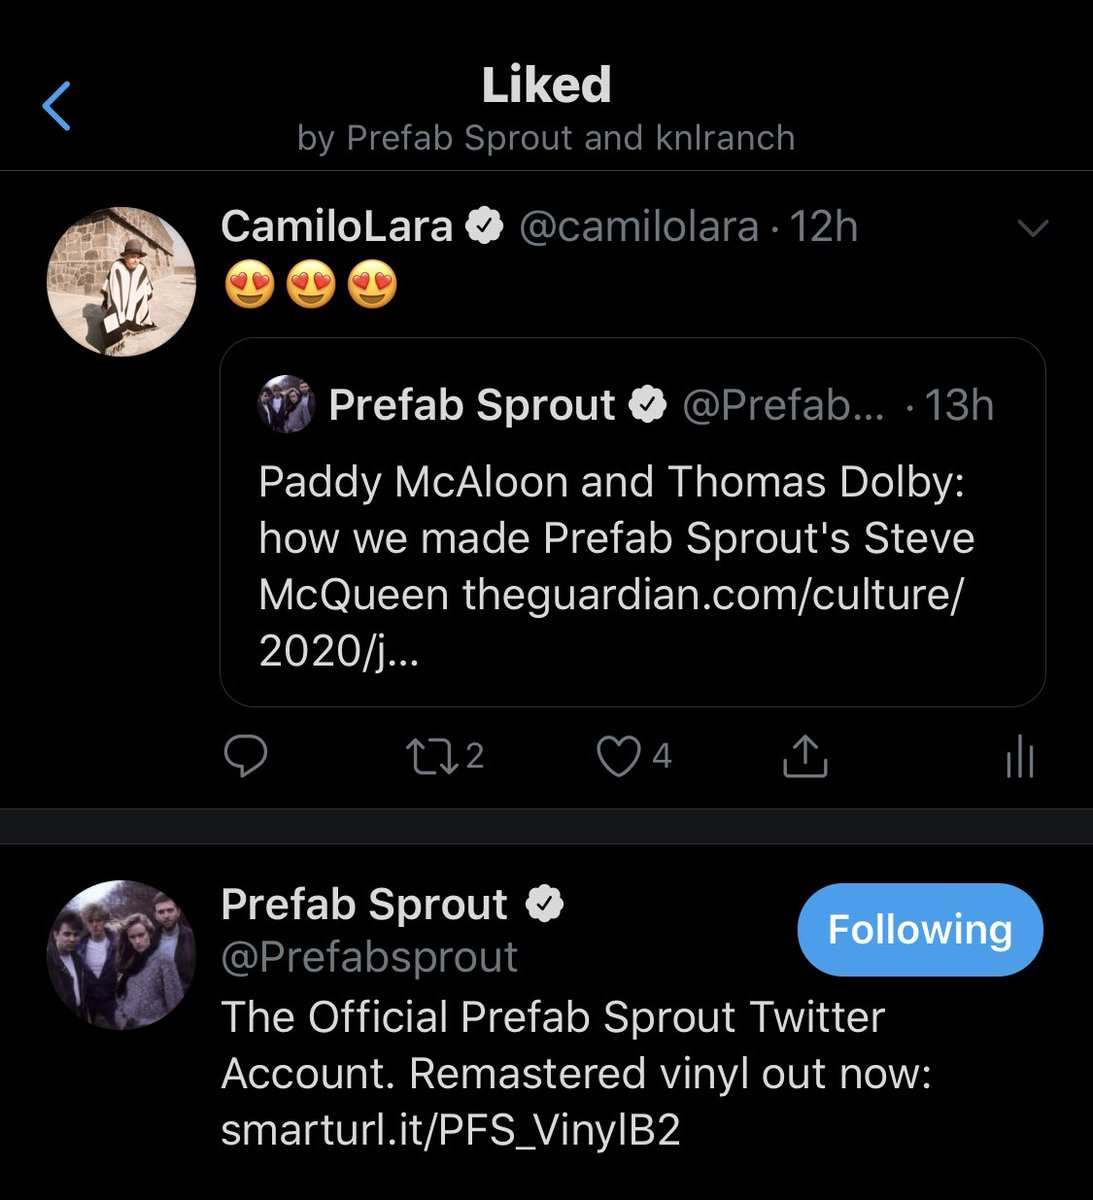 Now I can die in peace @Prefabsprout https://t.co/1sKugy1L8f